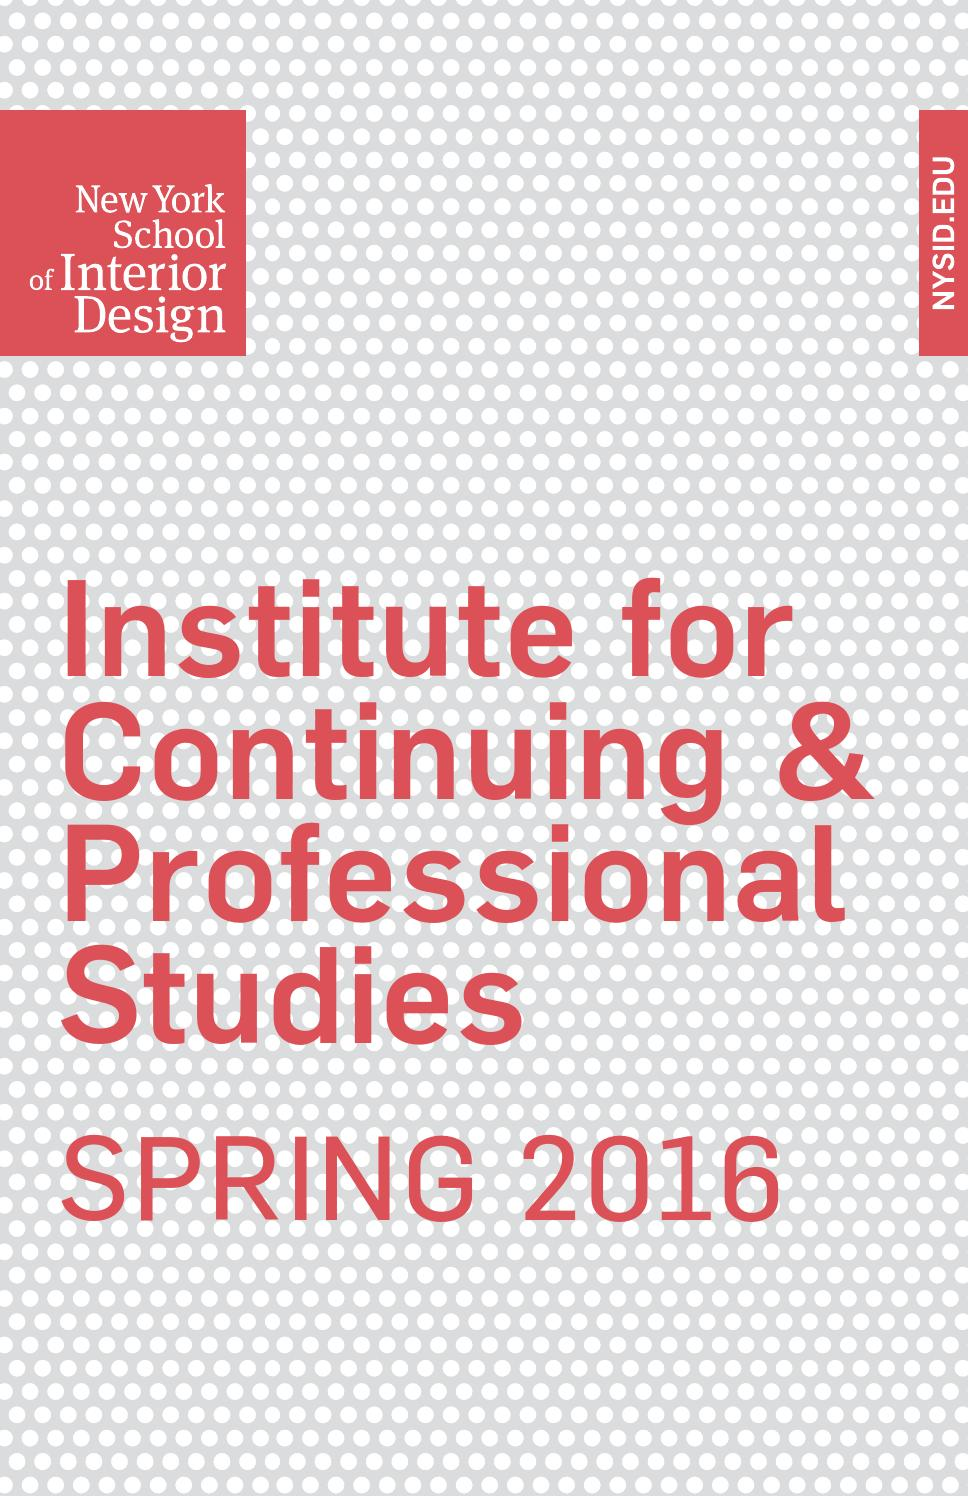 Spring 2016 Institute For Continuing Professional Studies By New York School Of Interior